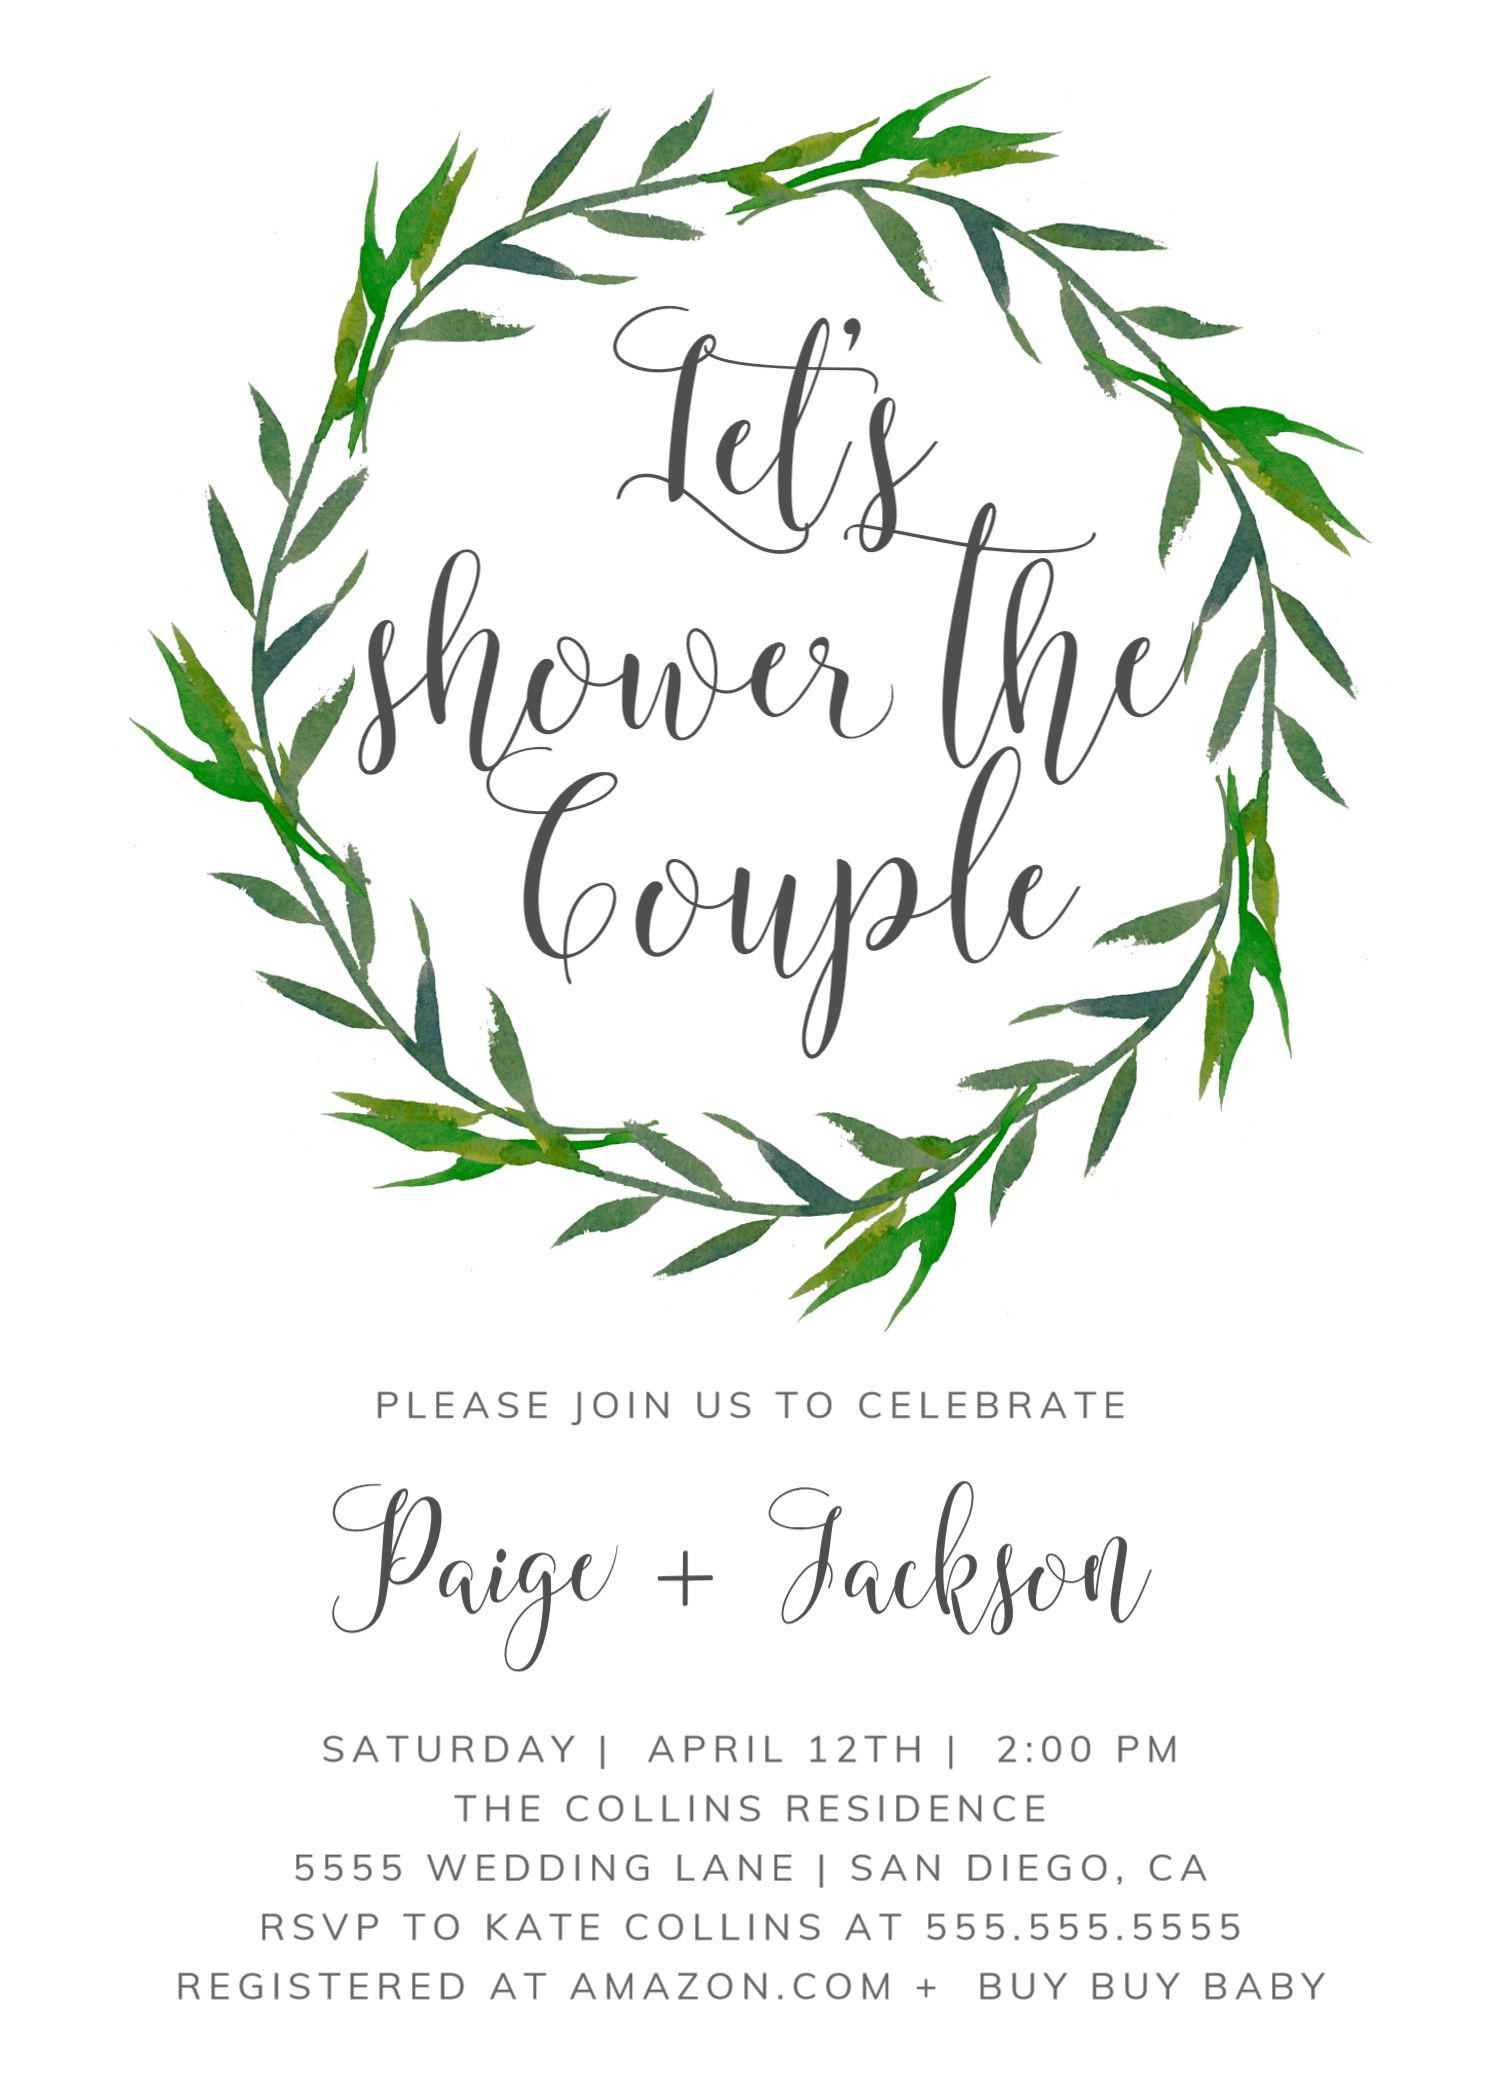 Wedding Shower Invitation Greenery Couples Shower Invite